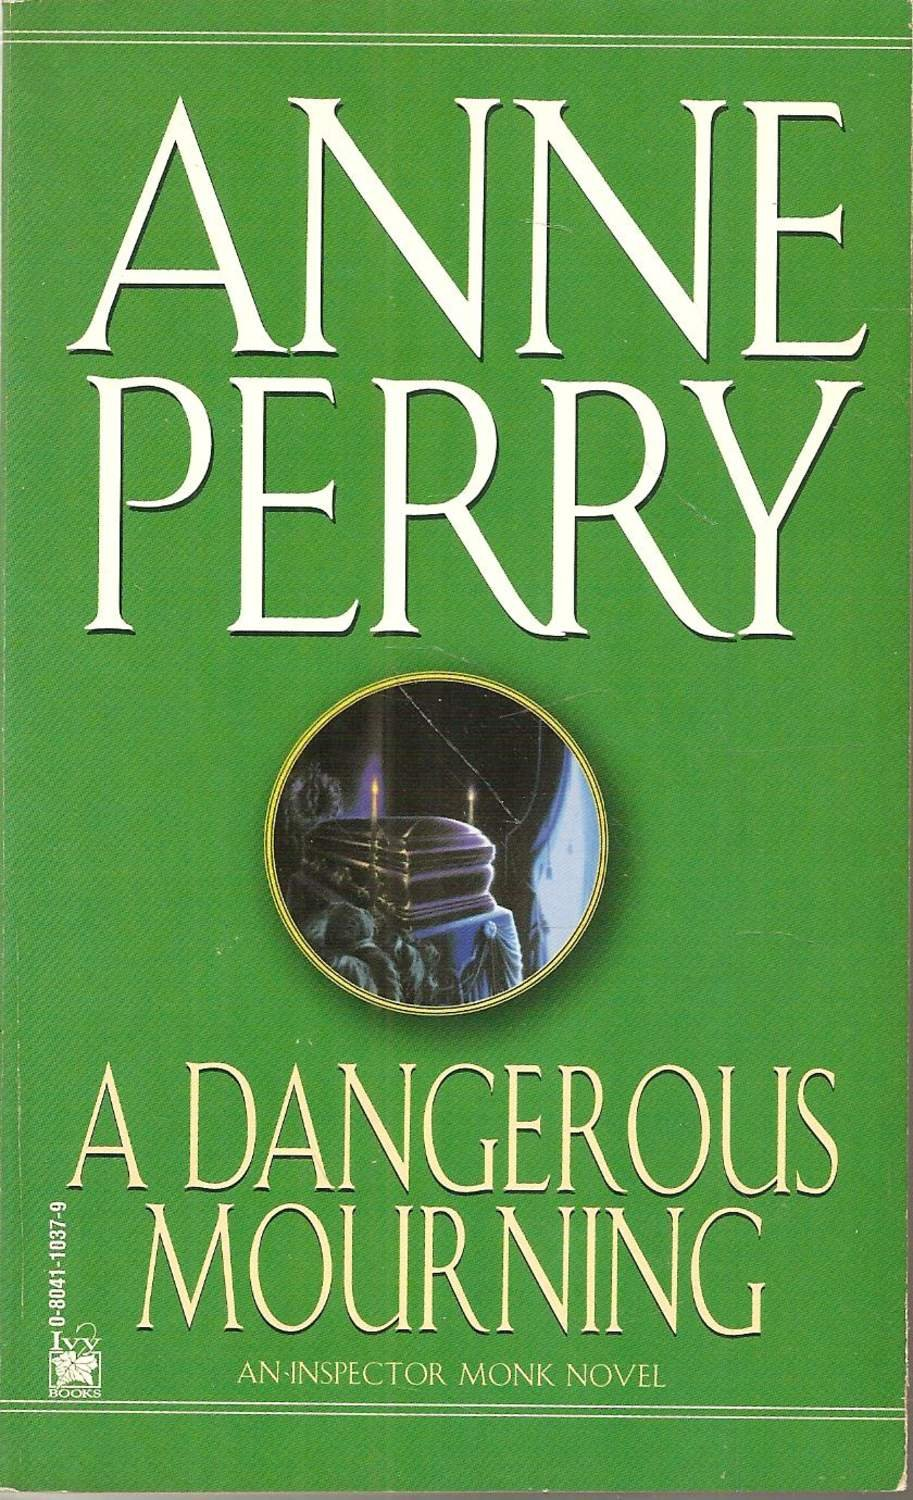 Anne Perry: A dangerous mourning.